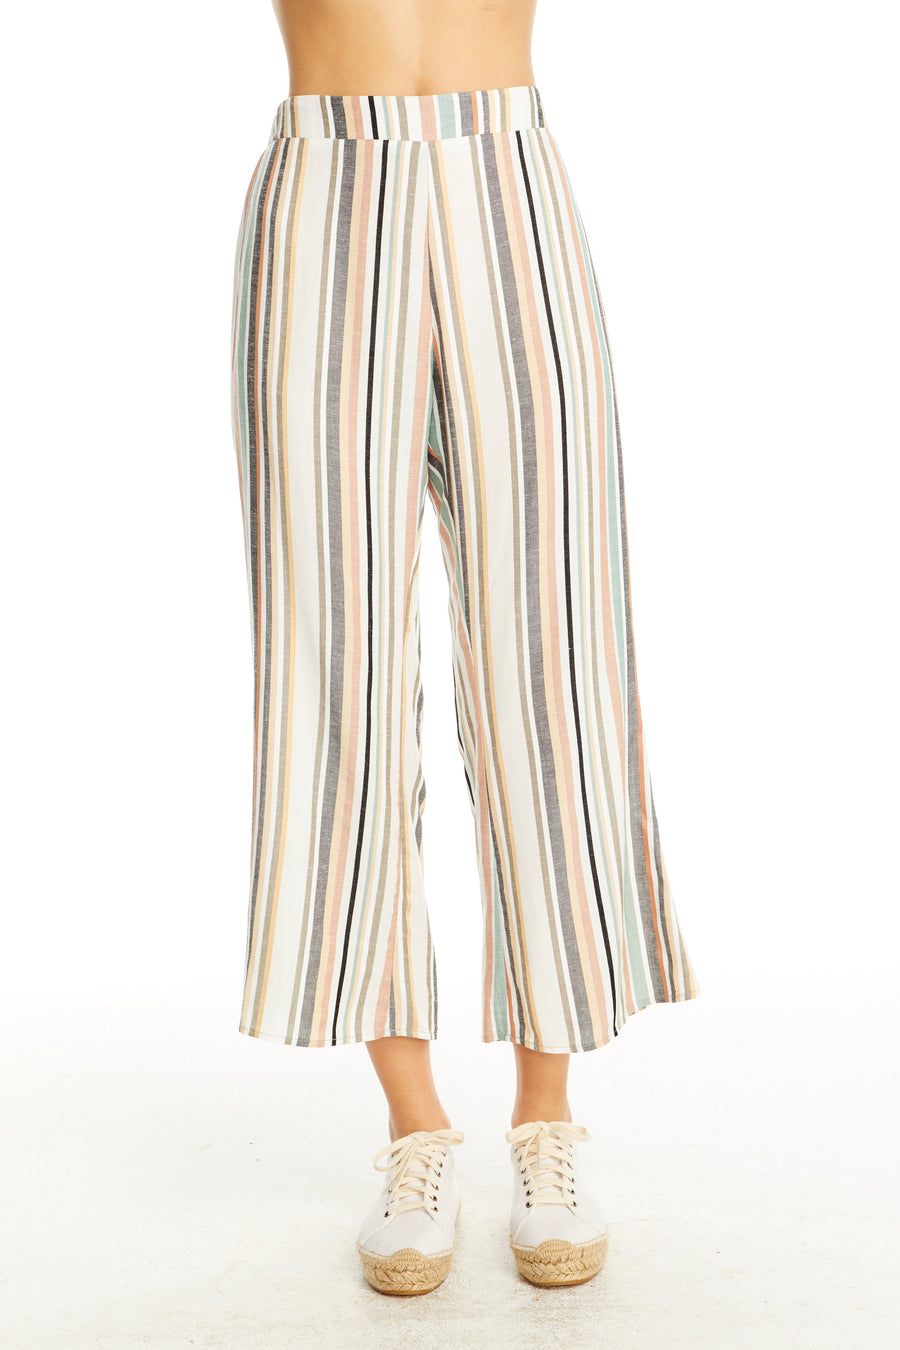 Saltwater Luxe Pull on Crop Pants